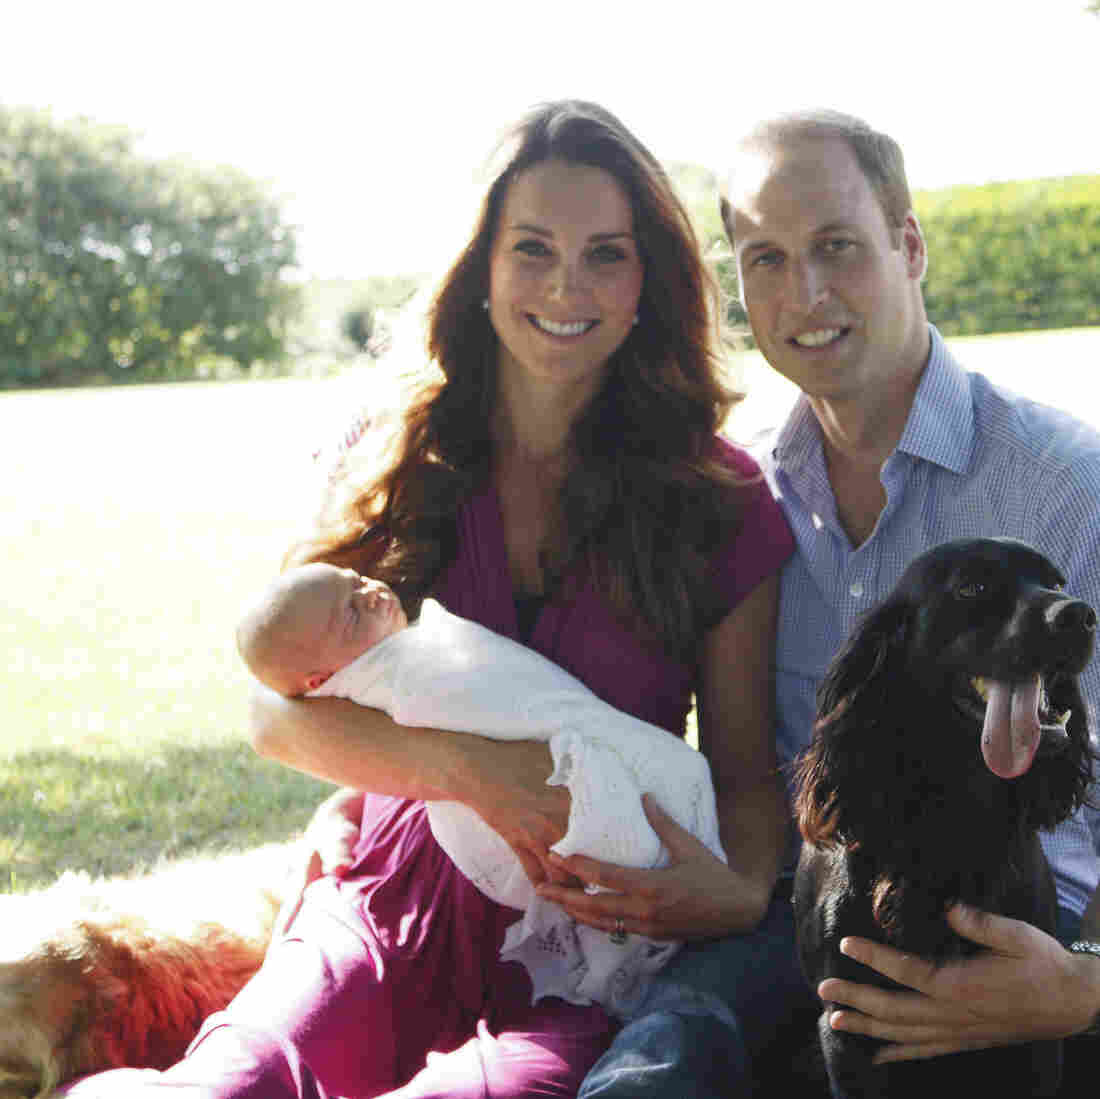 Prince George's First Official Photos Break With Tradition